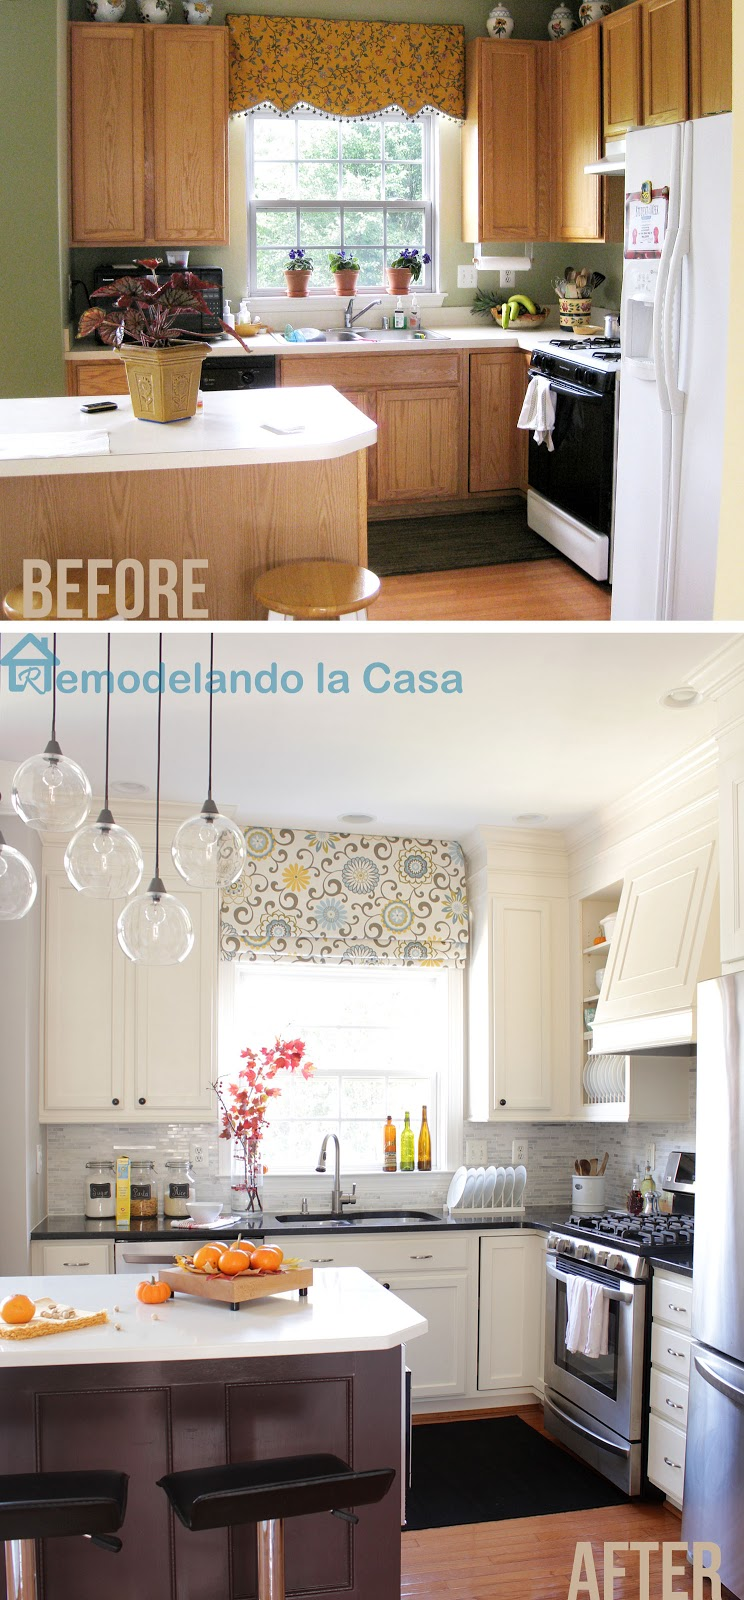 before and after of kitchen makeover on a budget with painted cabinets, closed space above cabinets, diy range hood and fridge enclosure.